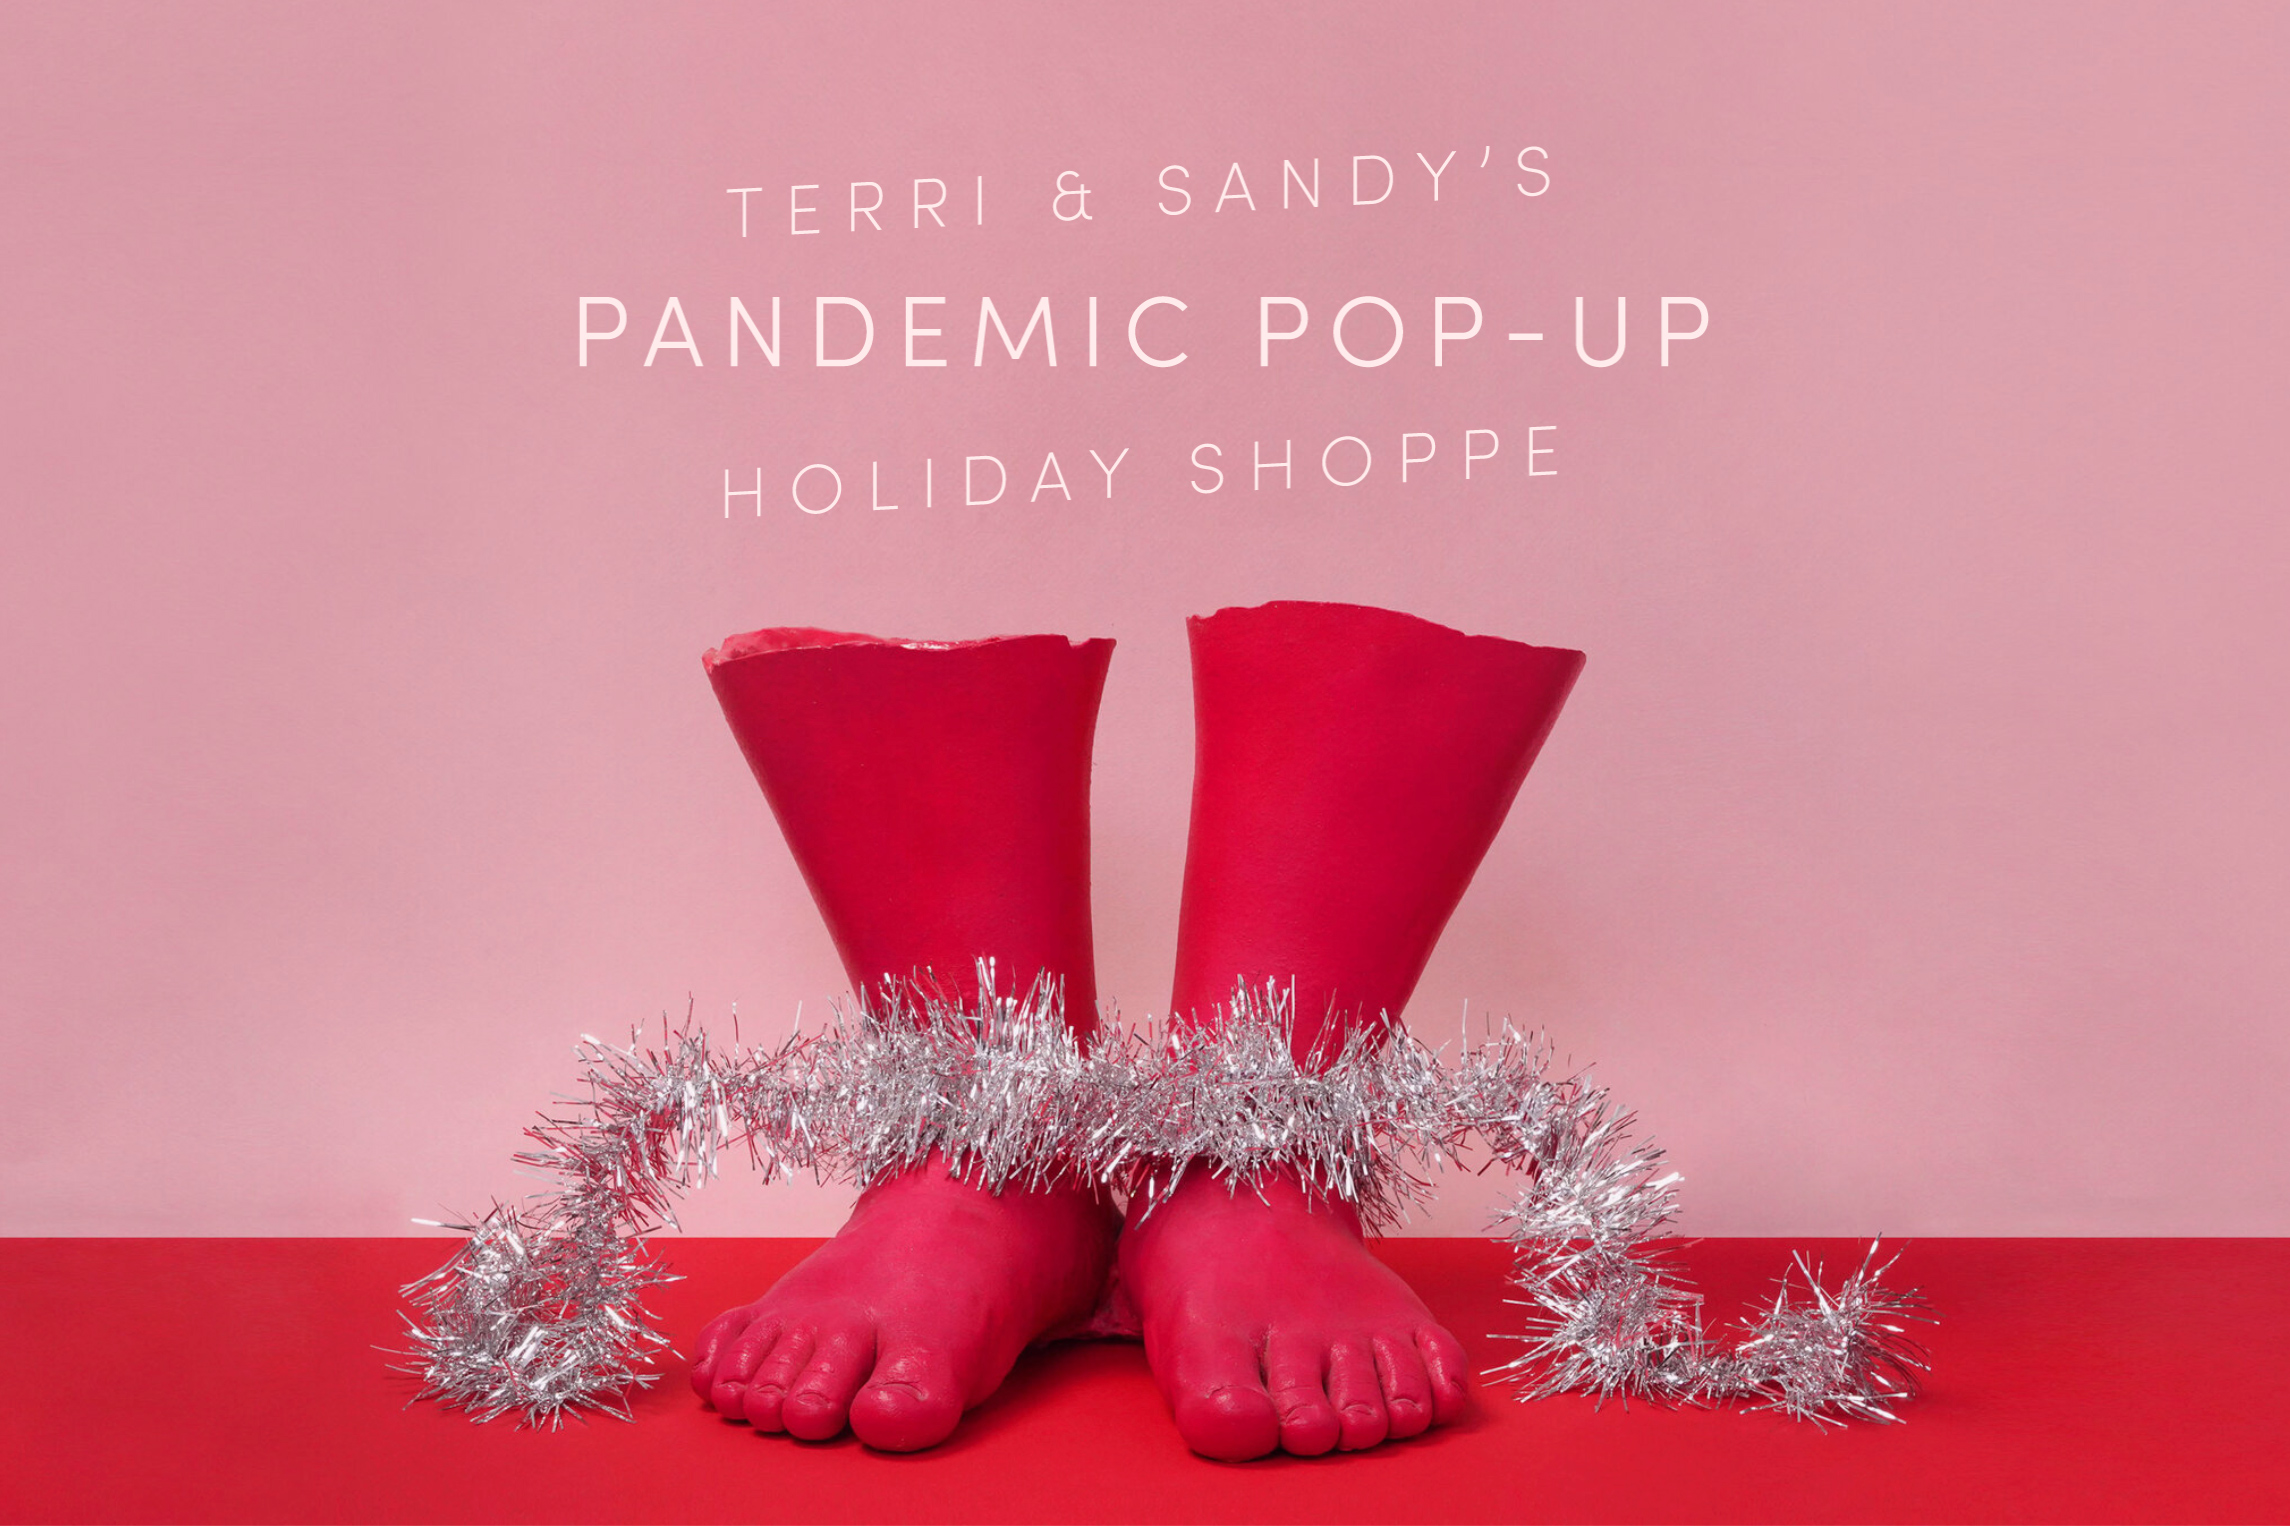 Terri & Sandy tries to pass unwanted desk junk off as 'gifts' at its Holiday Pandemic Pop-Up Shoppe